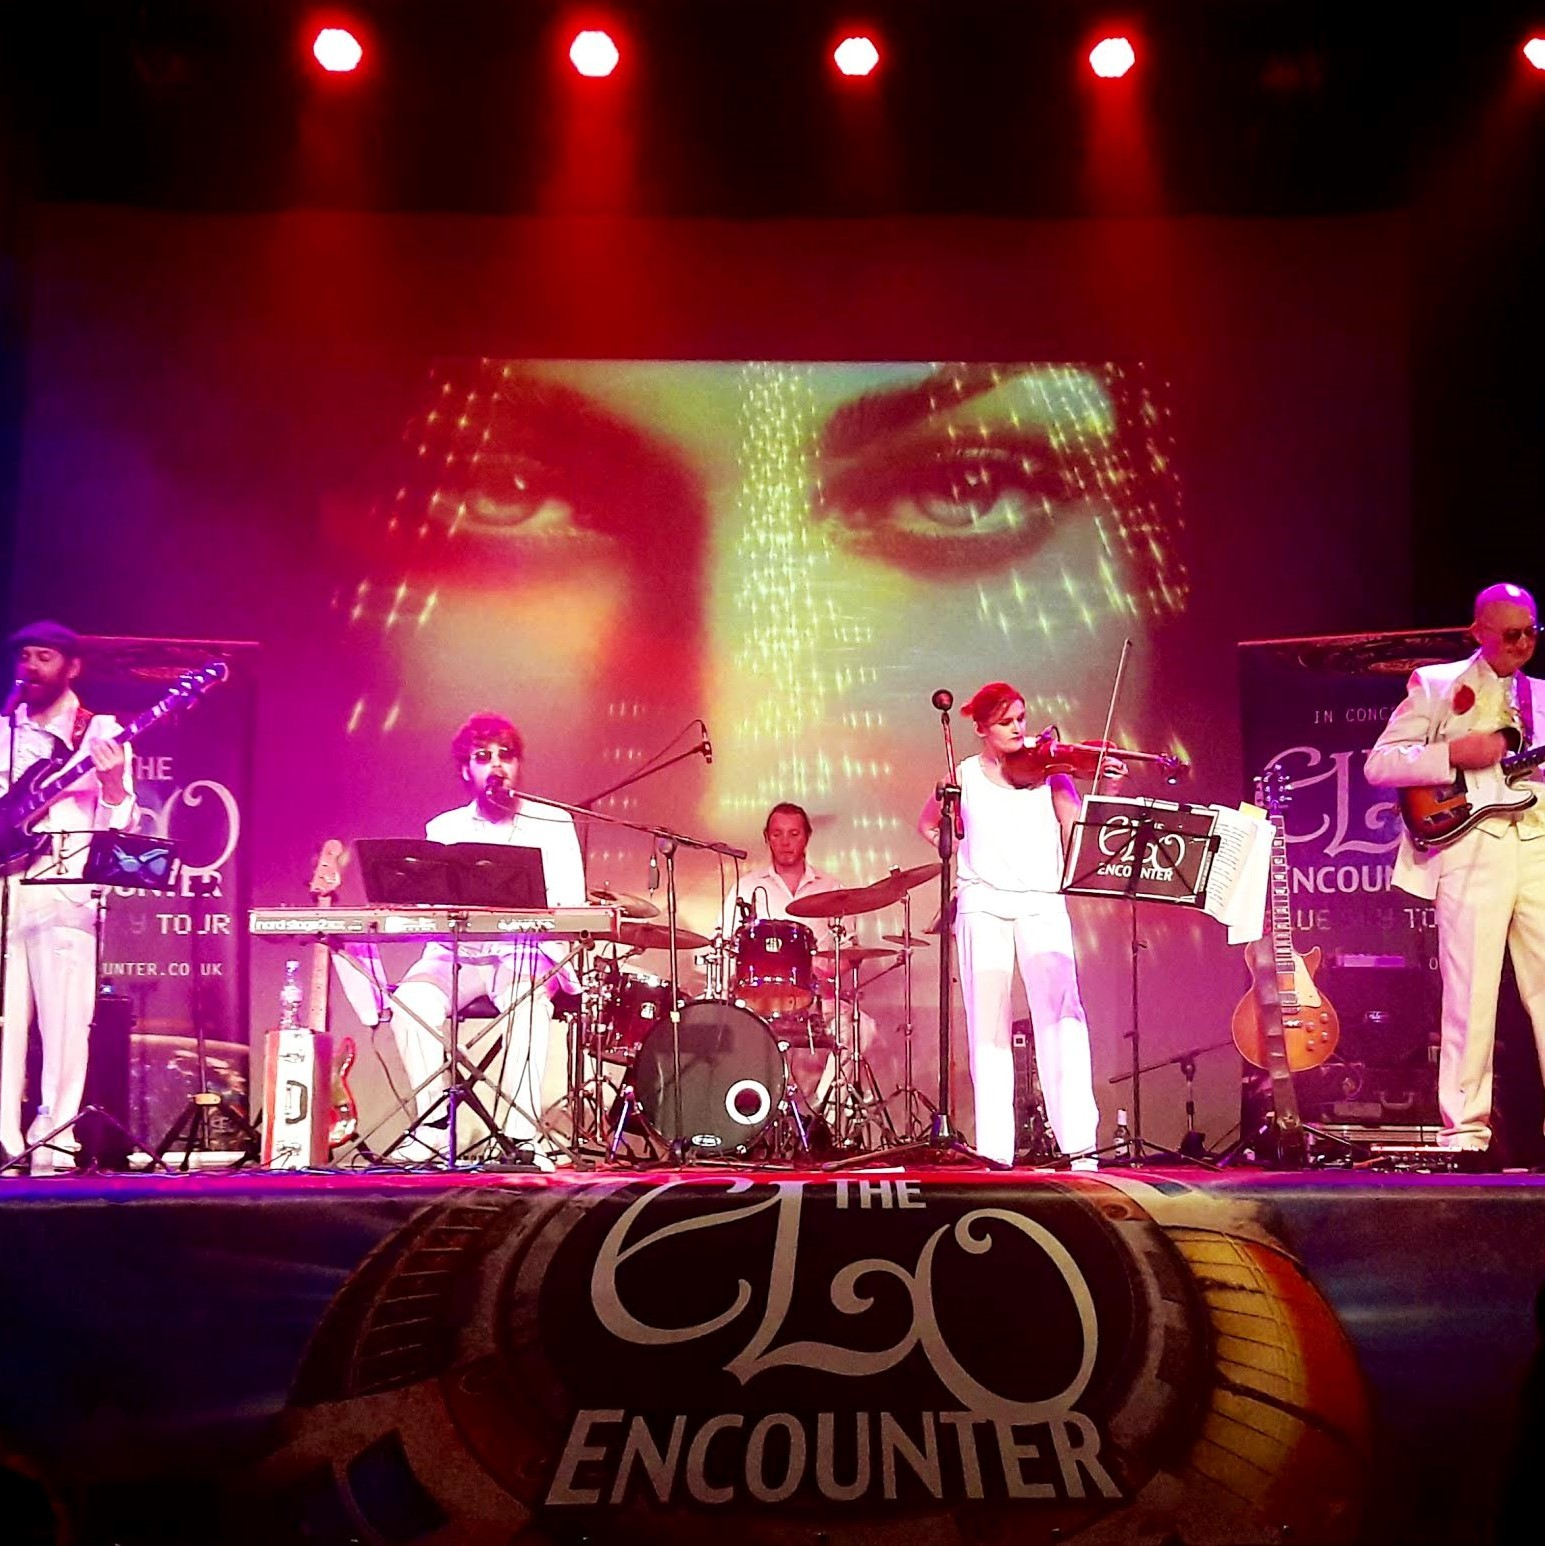 ELO Encounter- @ The Corn Hall, St Nicholas Street,